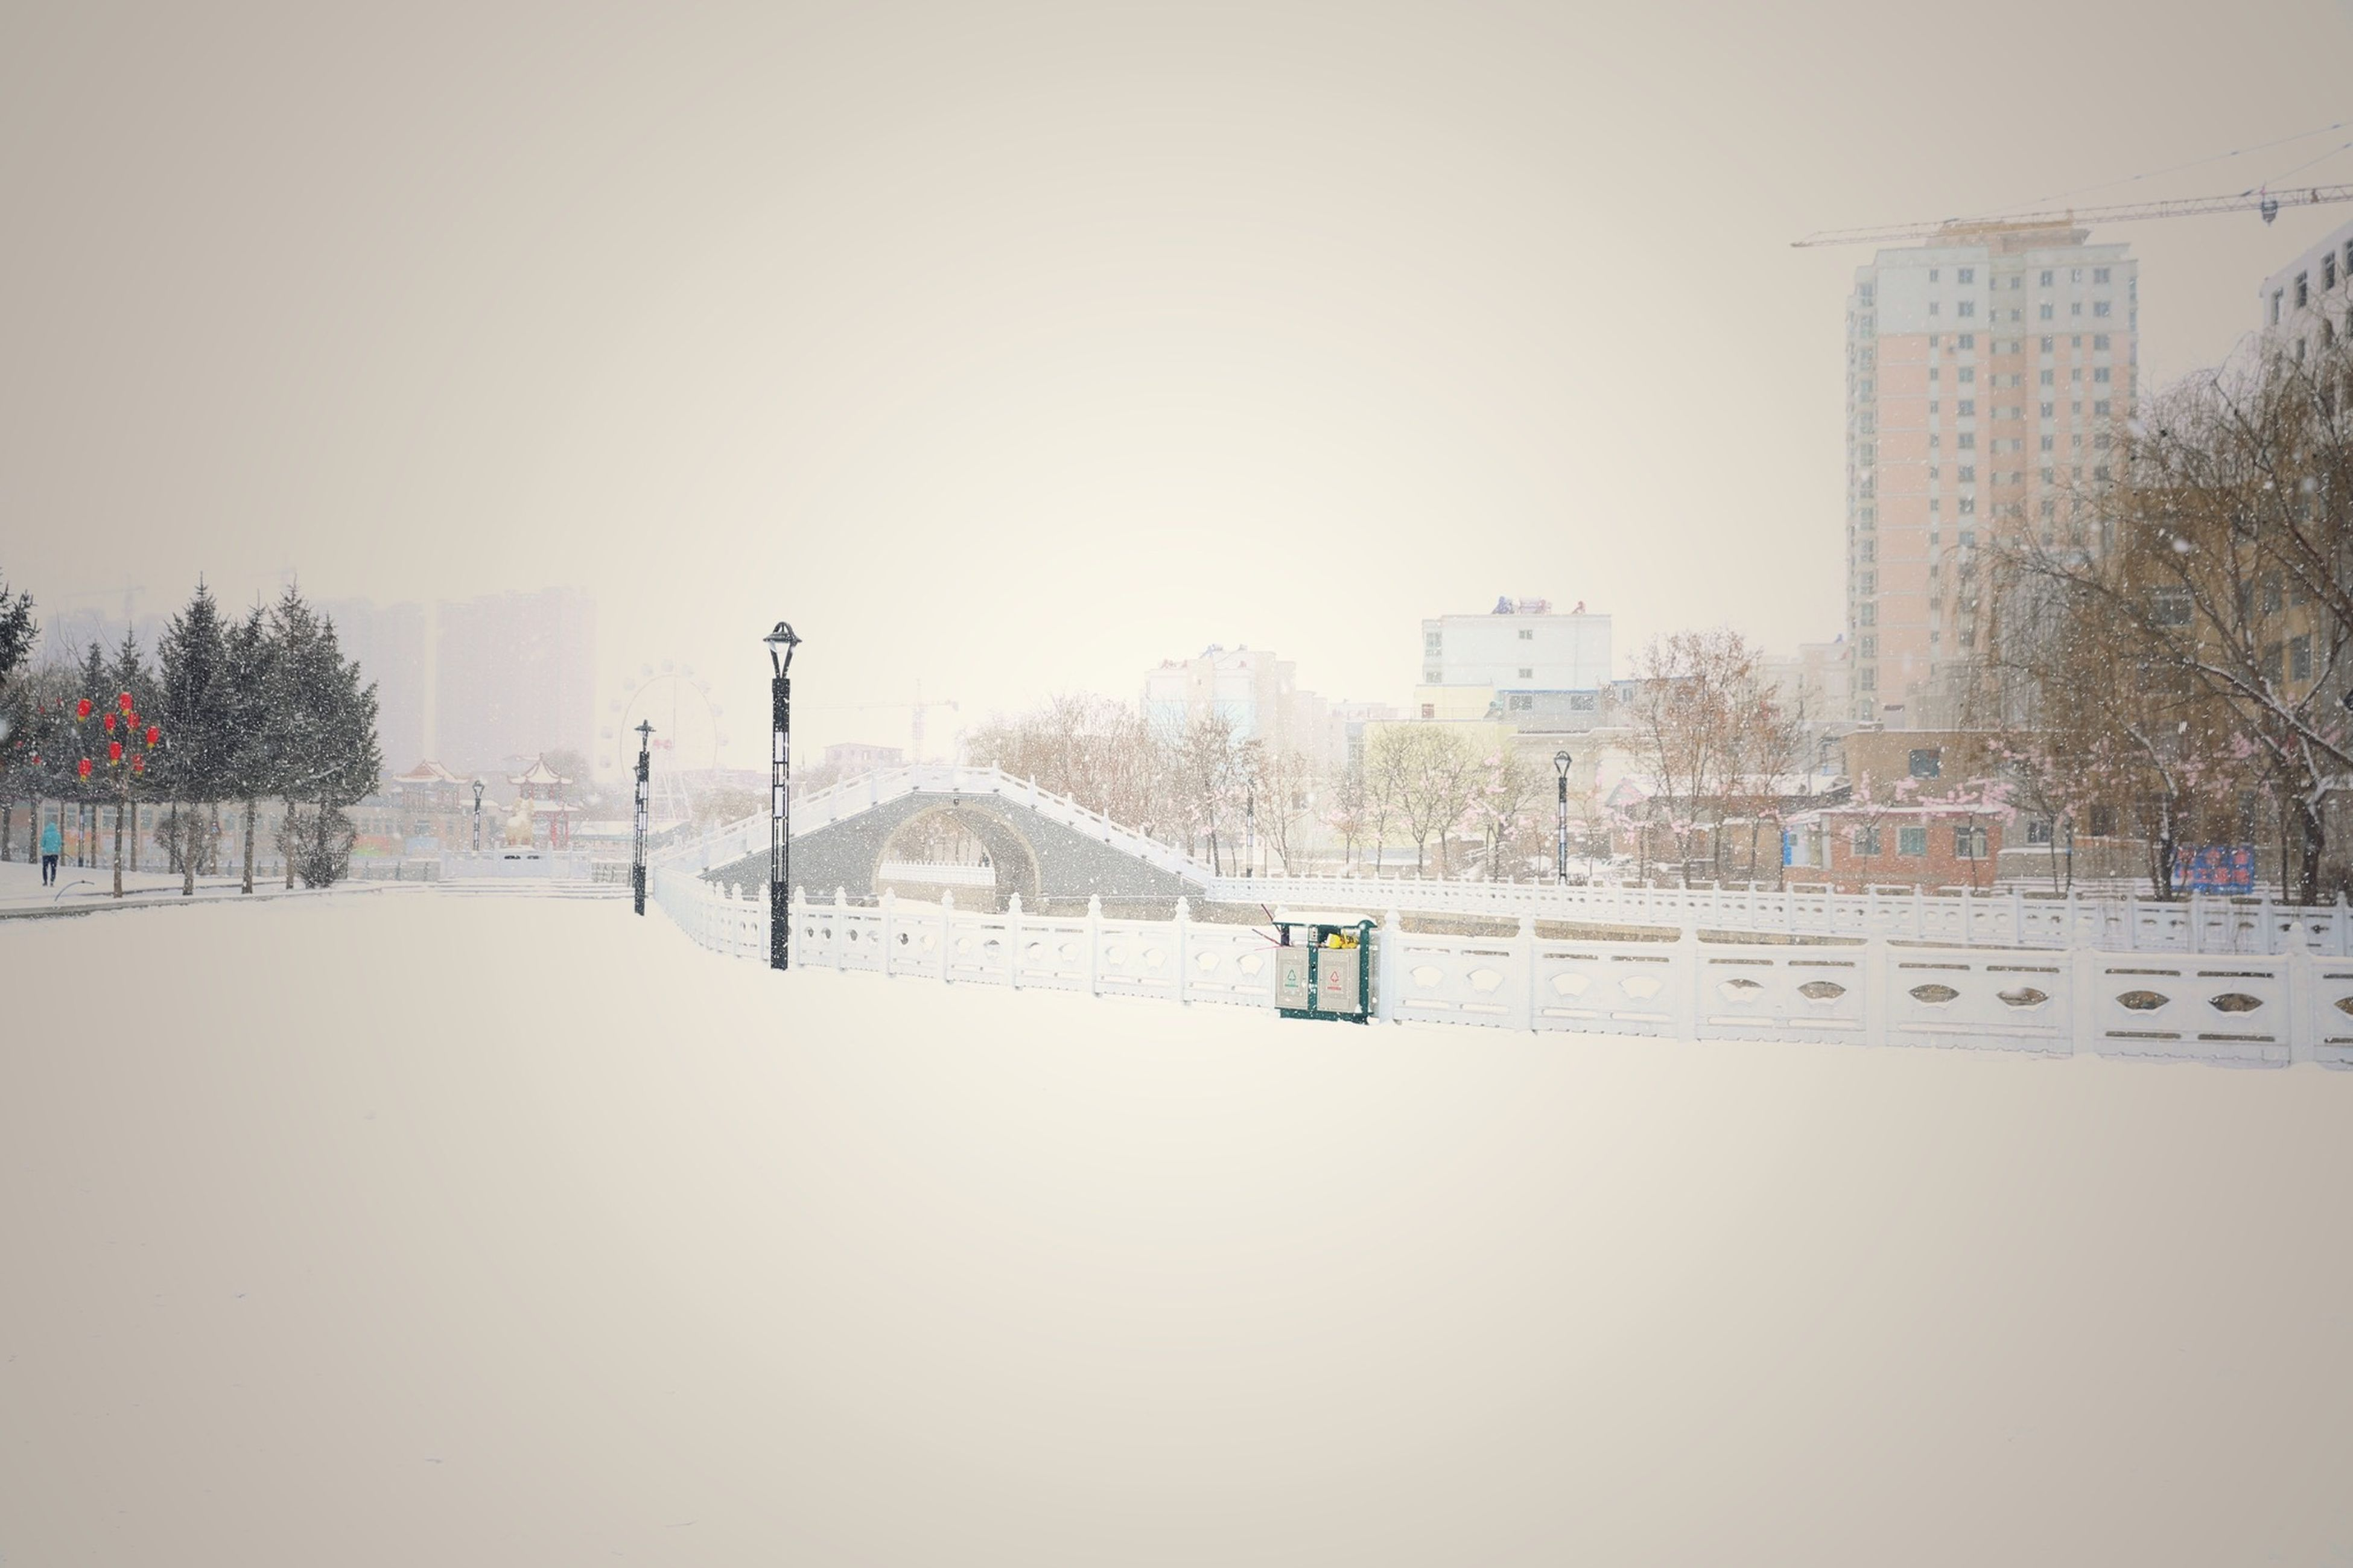 snow, winter, cold temperature, season, weather, built structure, architecture, clear sky, covering, tree, building exterior, copy space, frozen, nature, covered, white color, bare tree, railing, field, fence